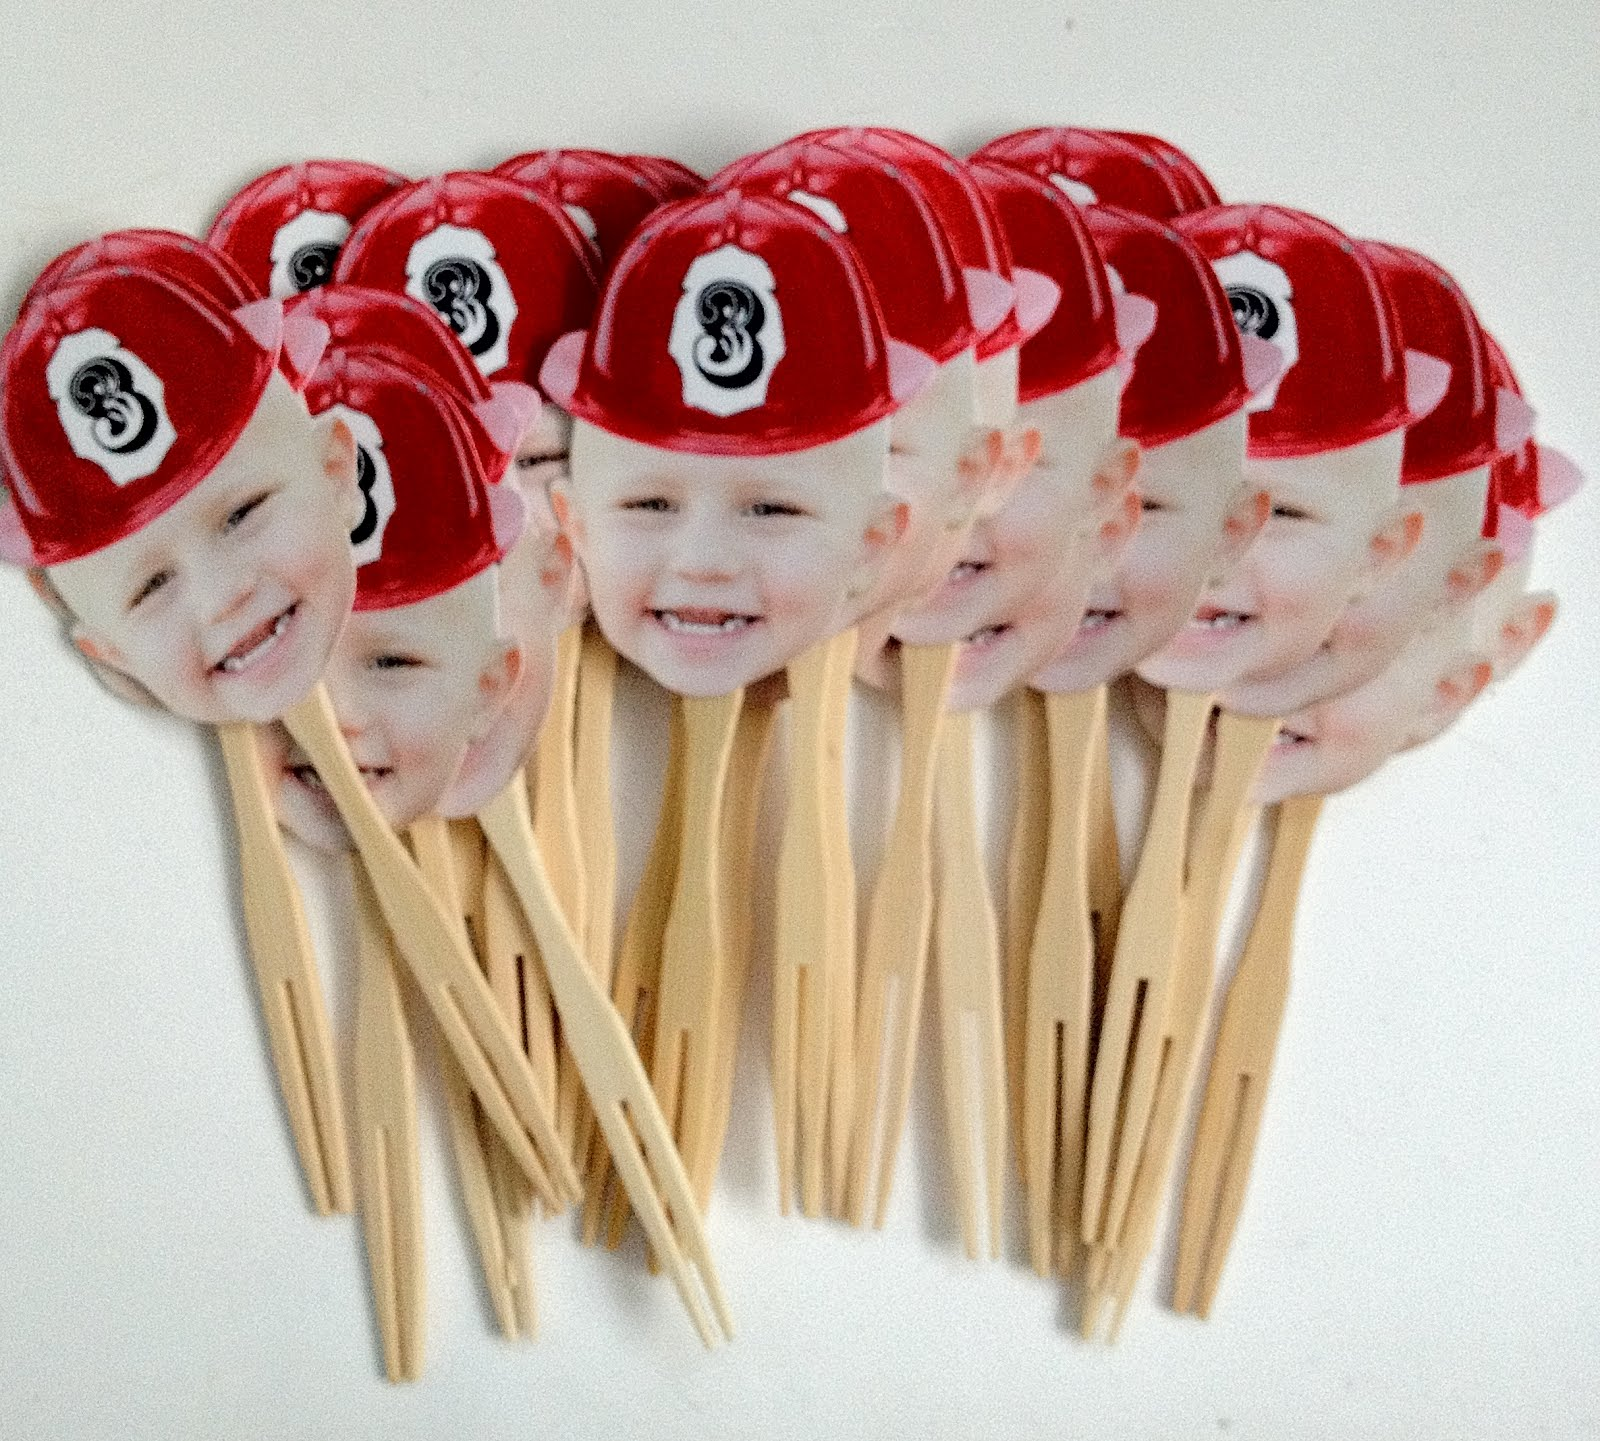 Firefighter Cupcake Decorations Cake Face Toppers Fireman Cupcake Toppers